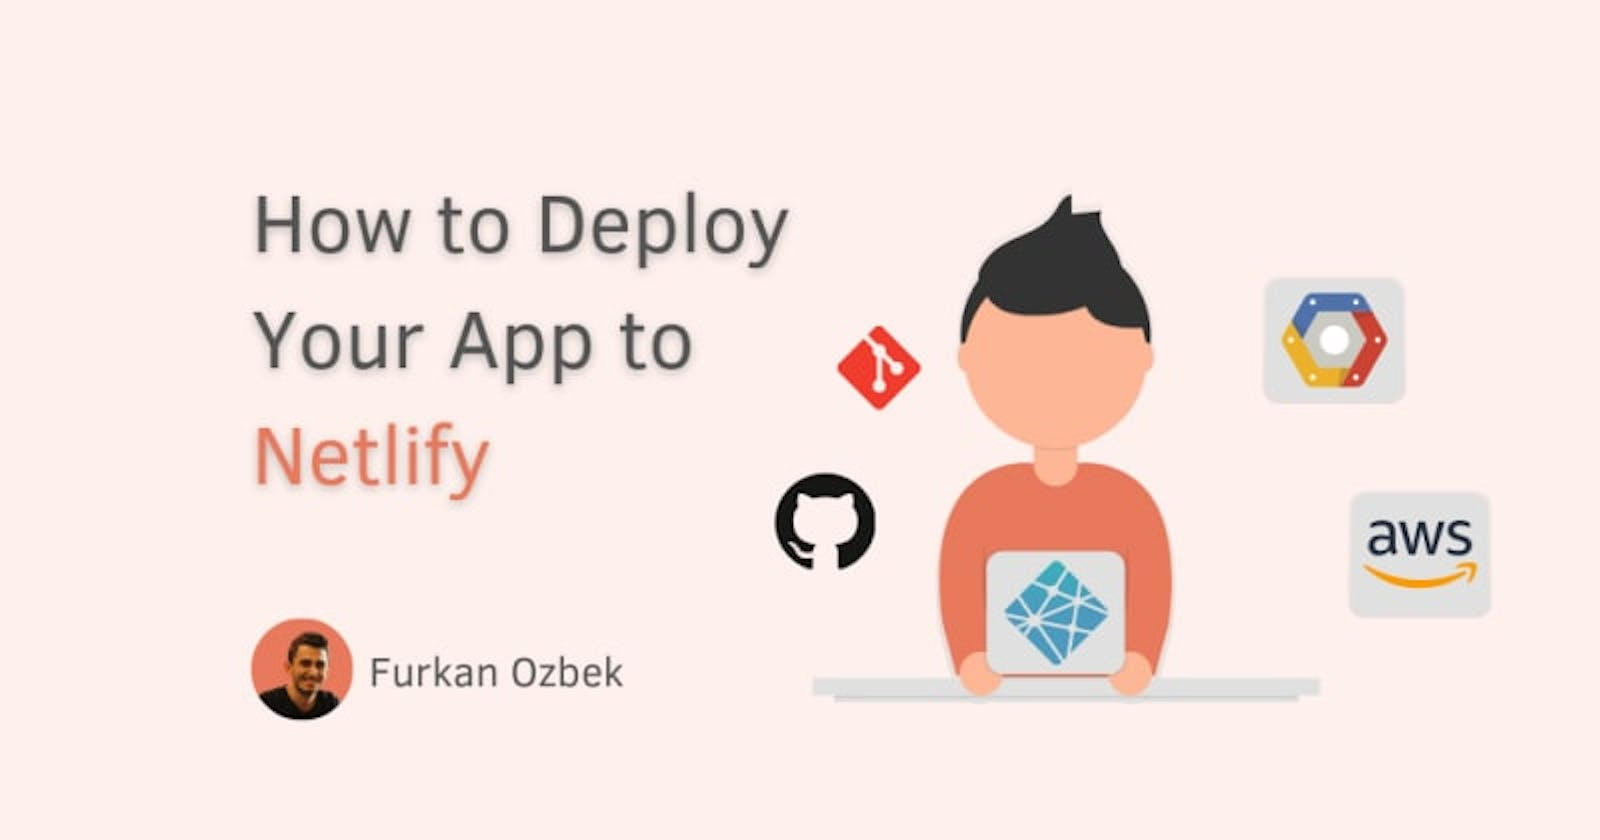 How to Deploy Your App to Netlify